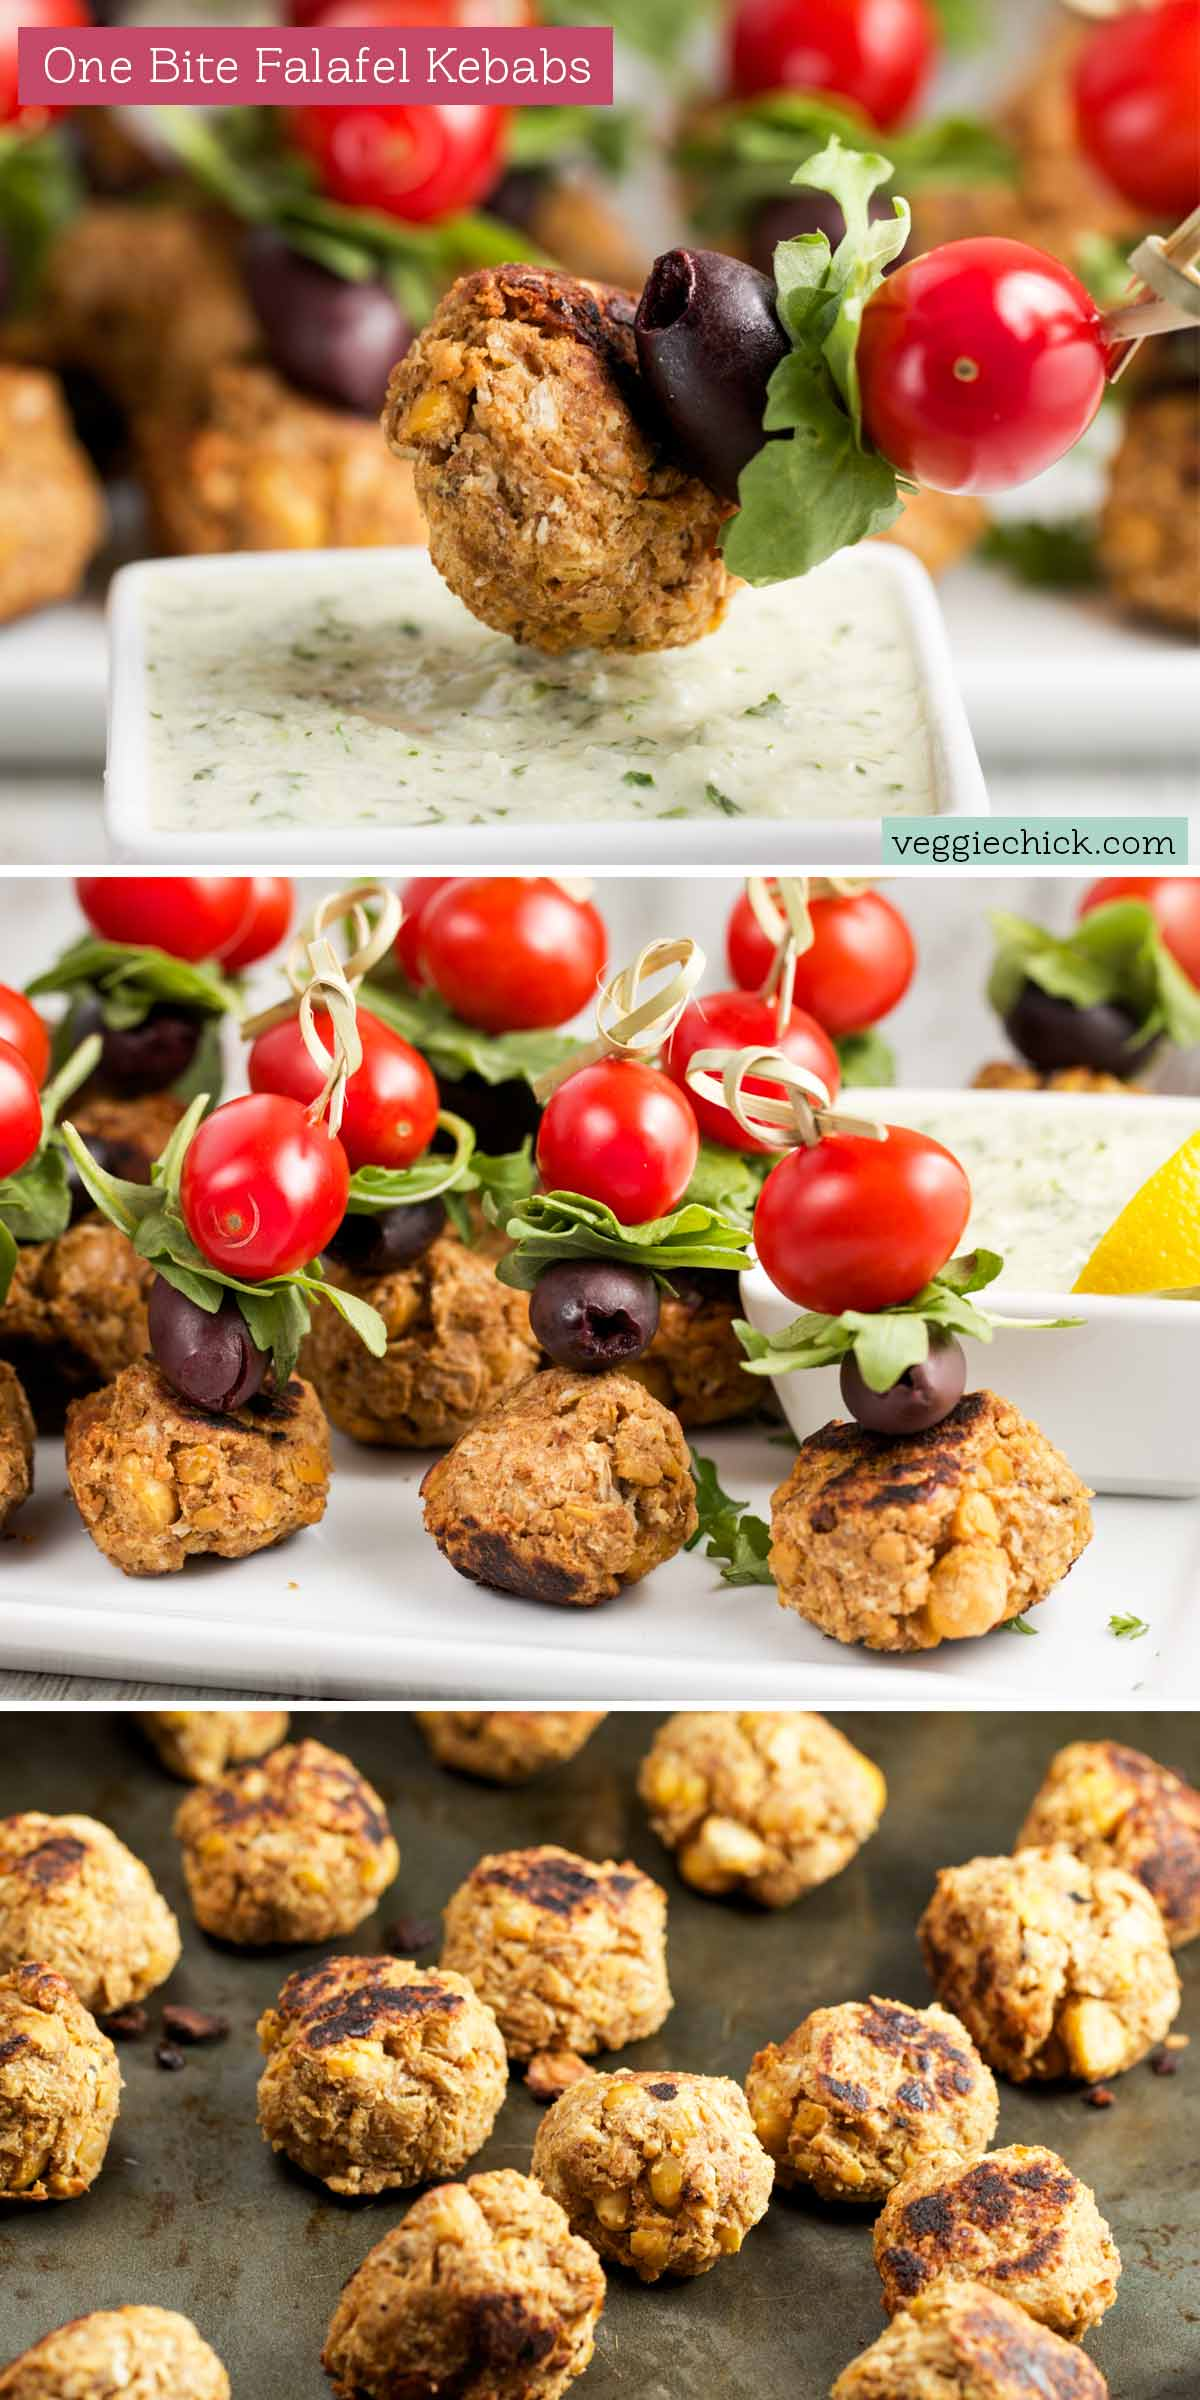 One Bite Falafel Kebabs (Vegan)